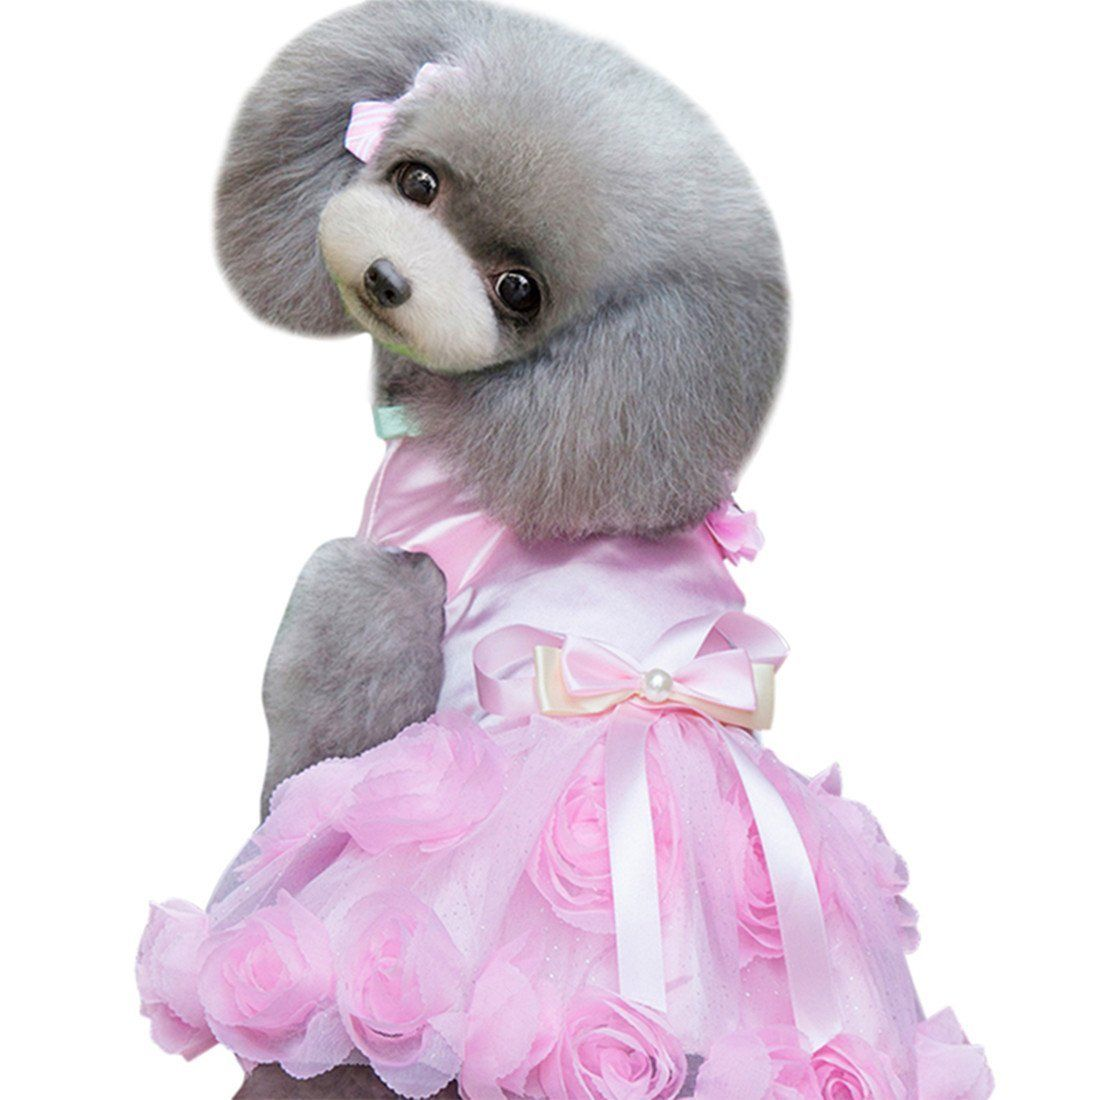 Idefair Pet Puppy Small Dog Cat Lace Skirt Princess Dress Fluffy Skirt Pearls ** You can get additional details at the image link. (This is an affiliate link and I receive a commission for the sales)